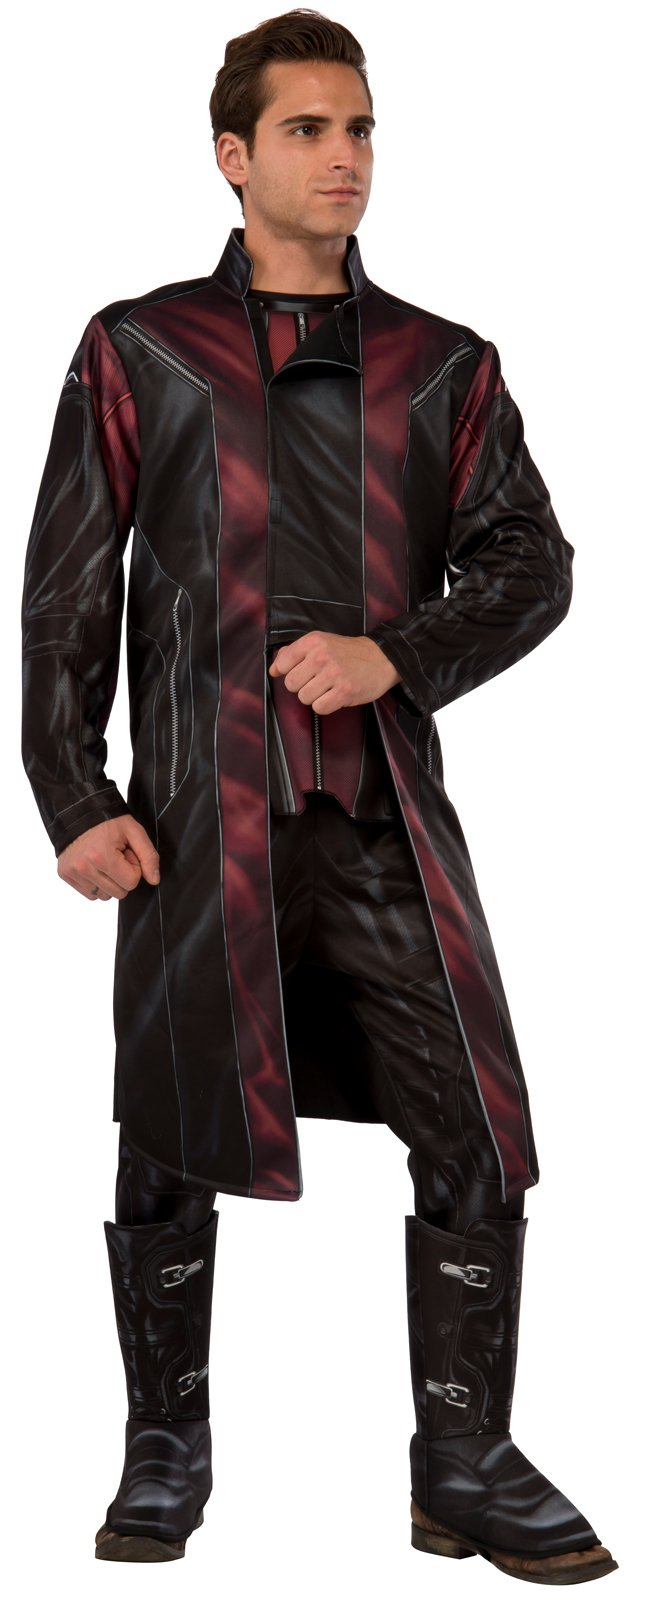 Avengers Age of Ultron Hawkeye Deluxe Costume | Dons Hobby Shop